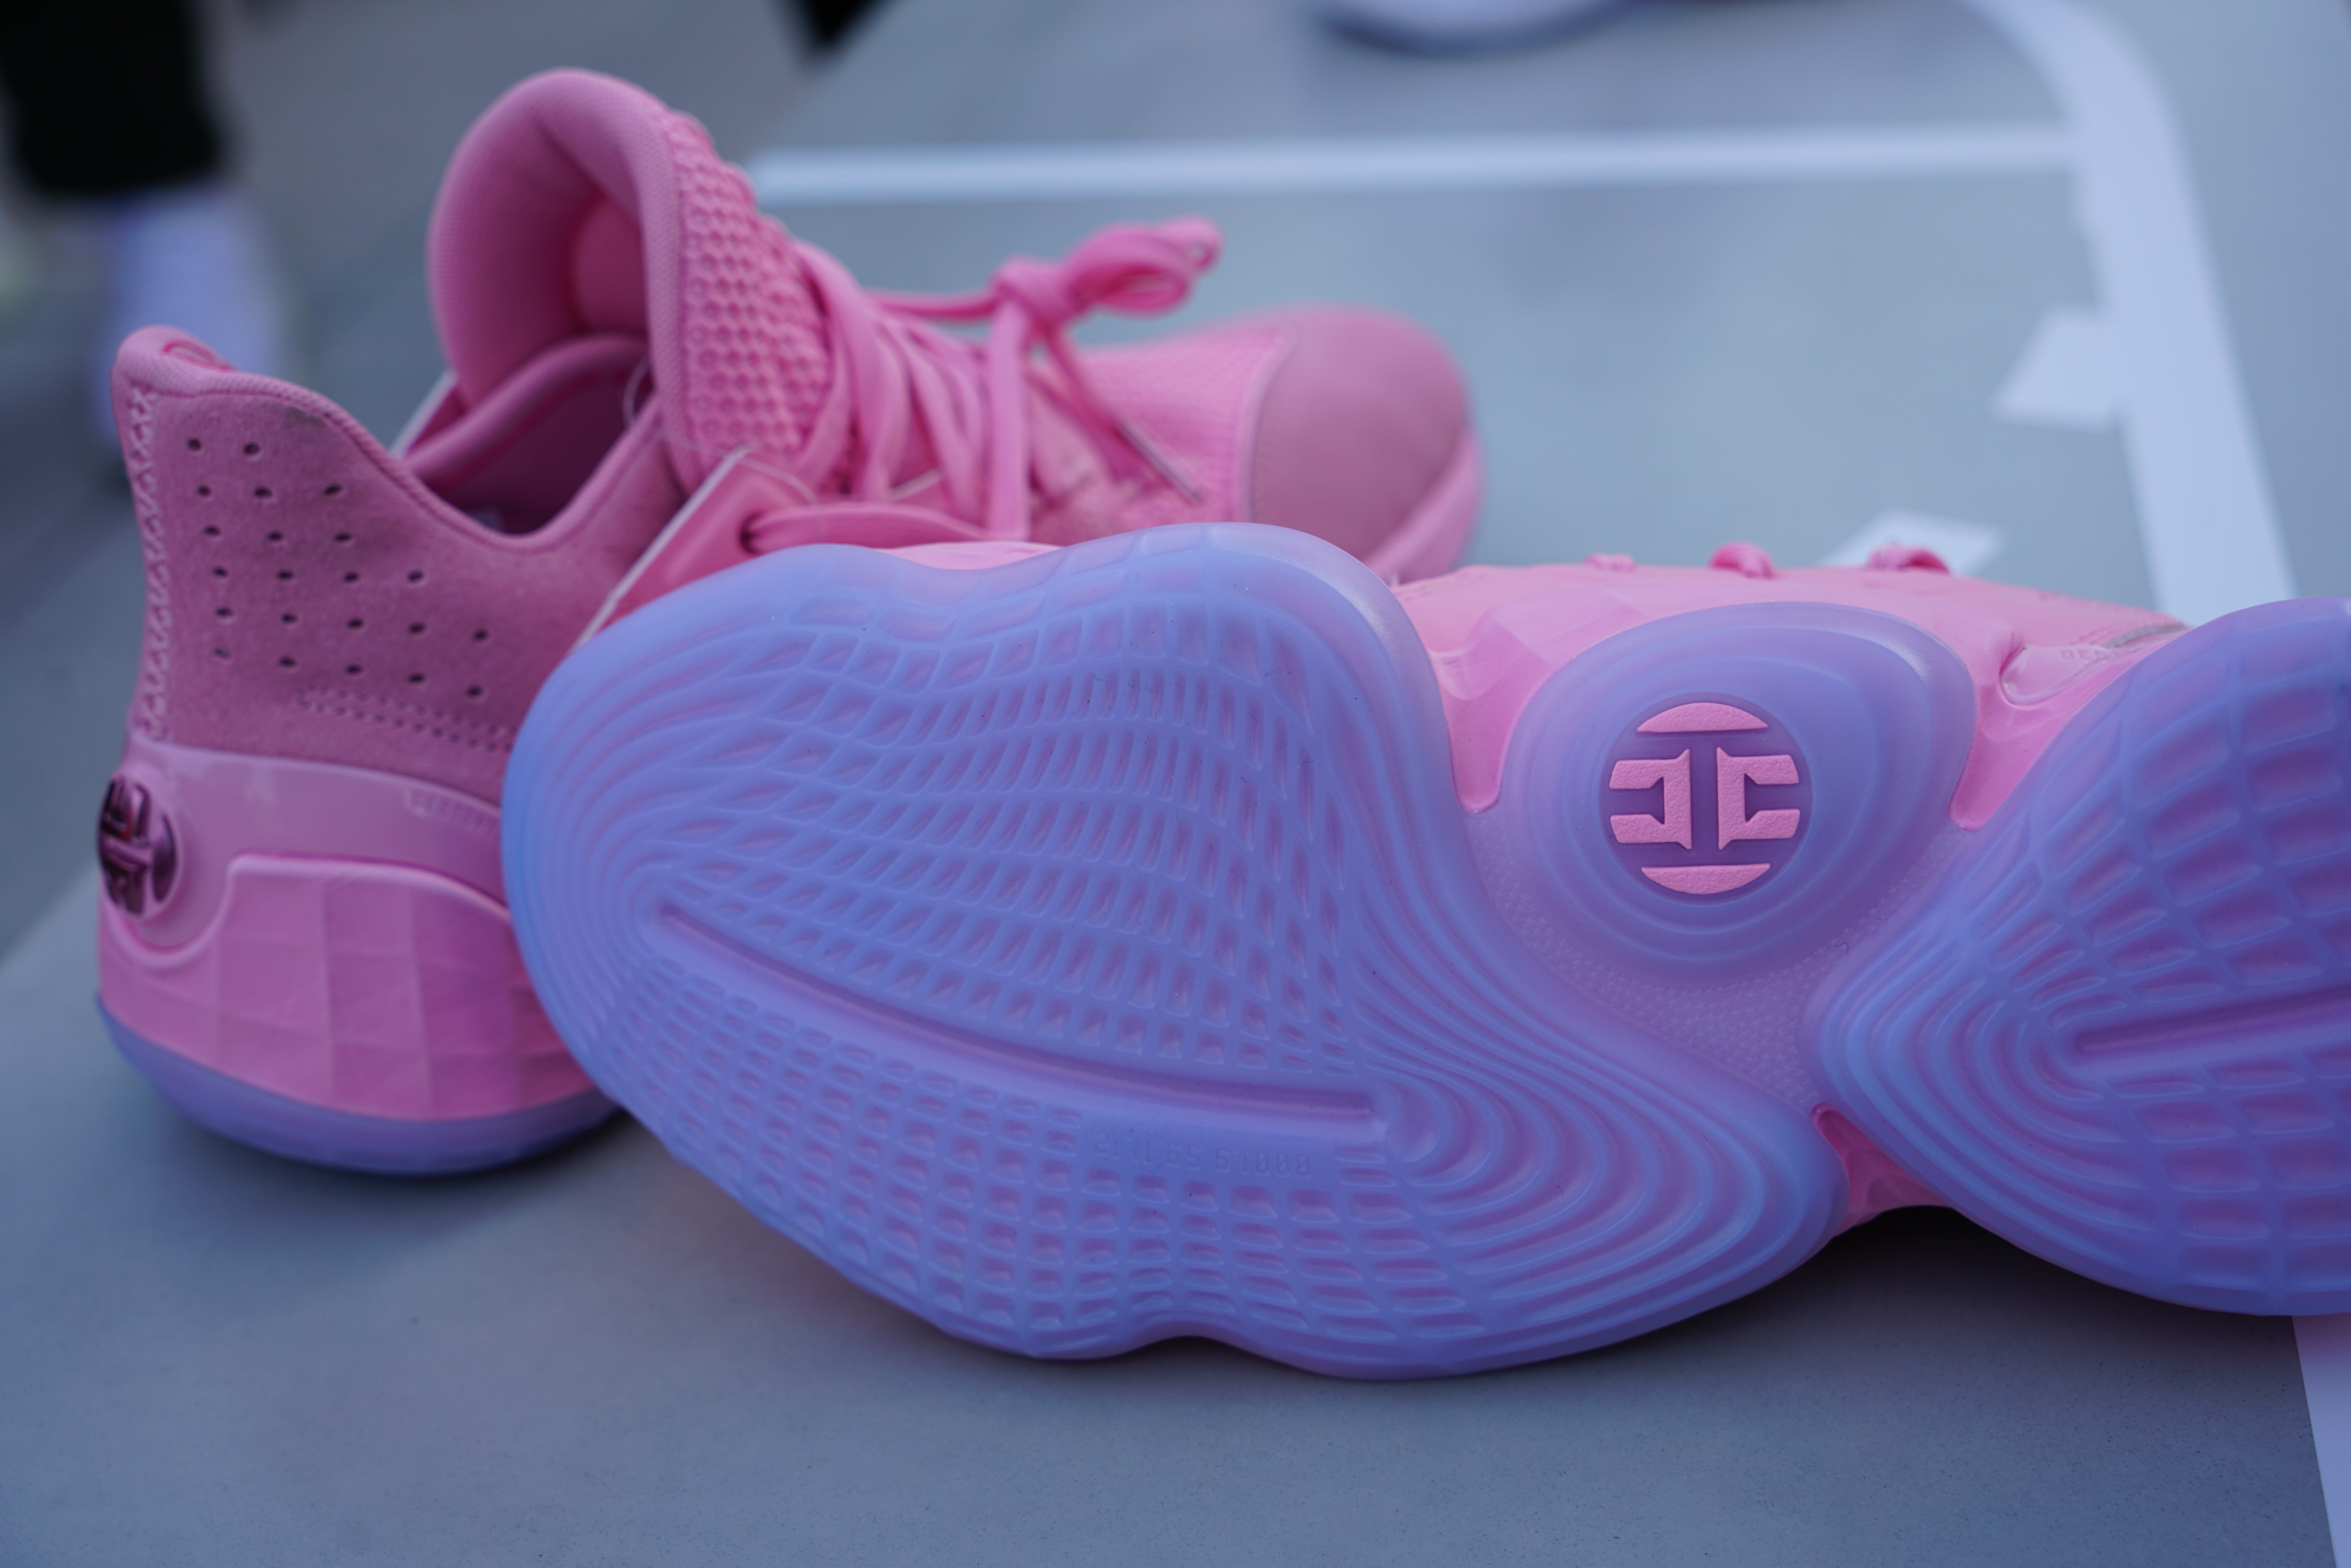 Adidas Harden Vol. 4 'Pink Lemonade' (Sole)